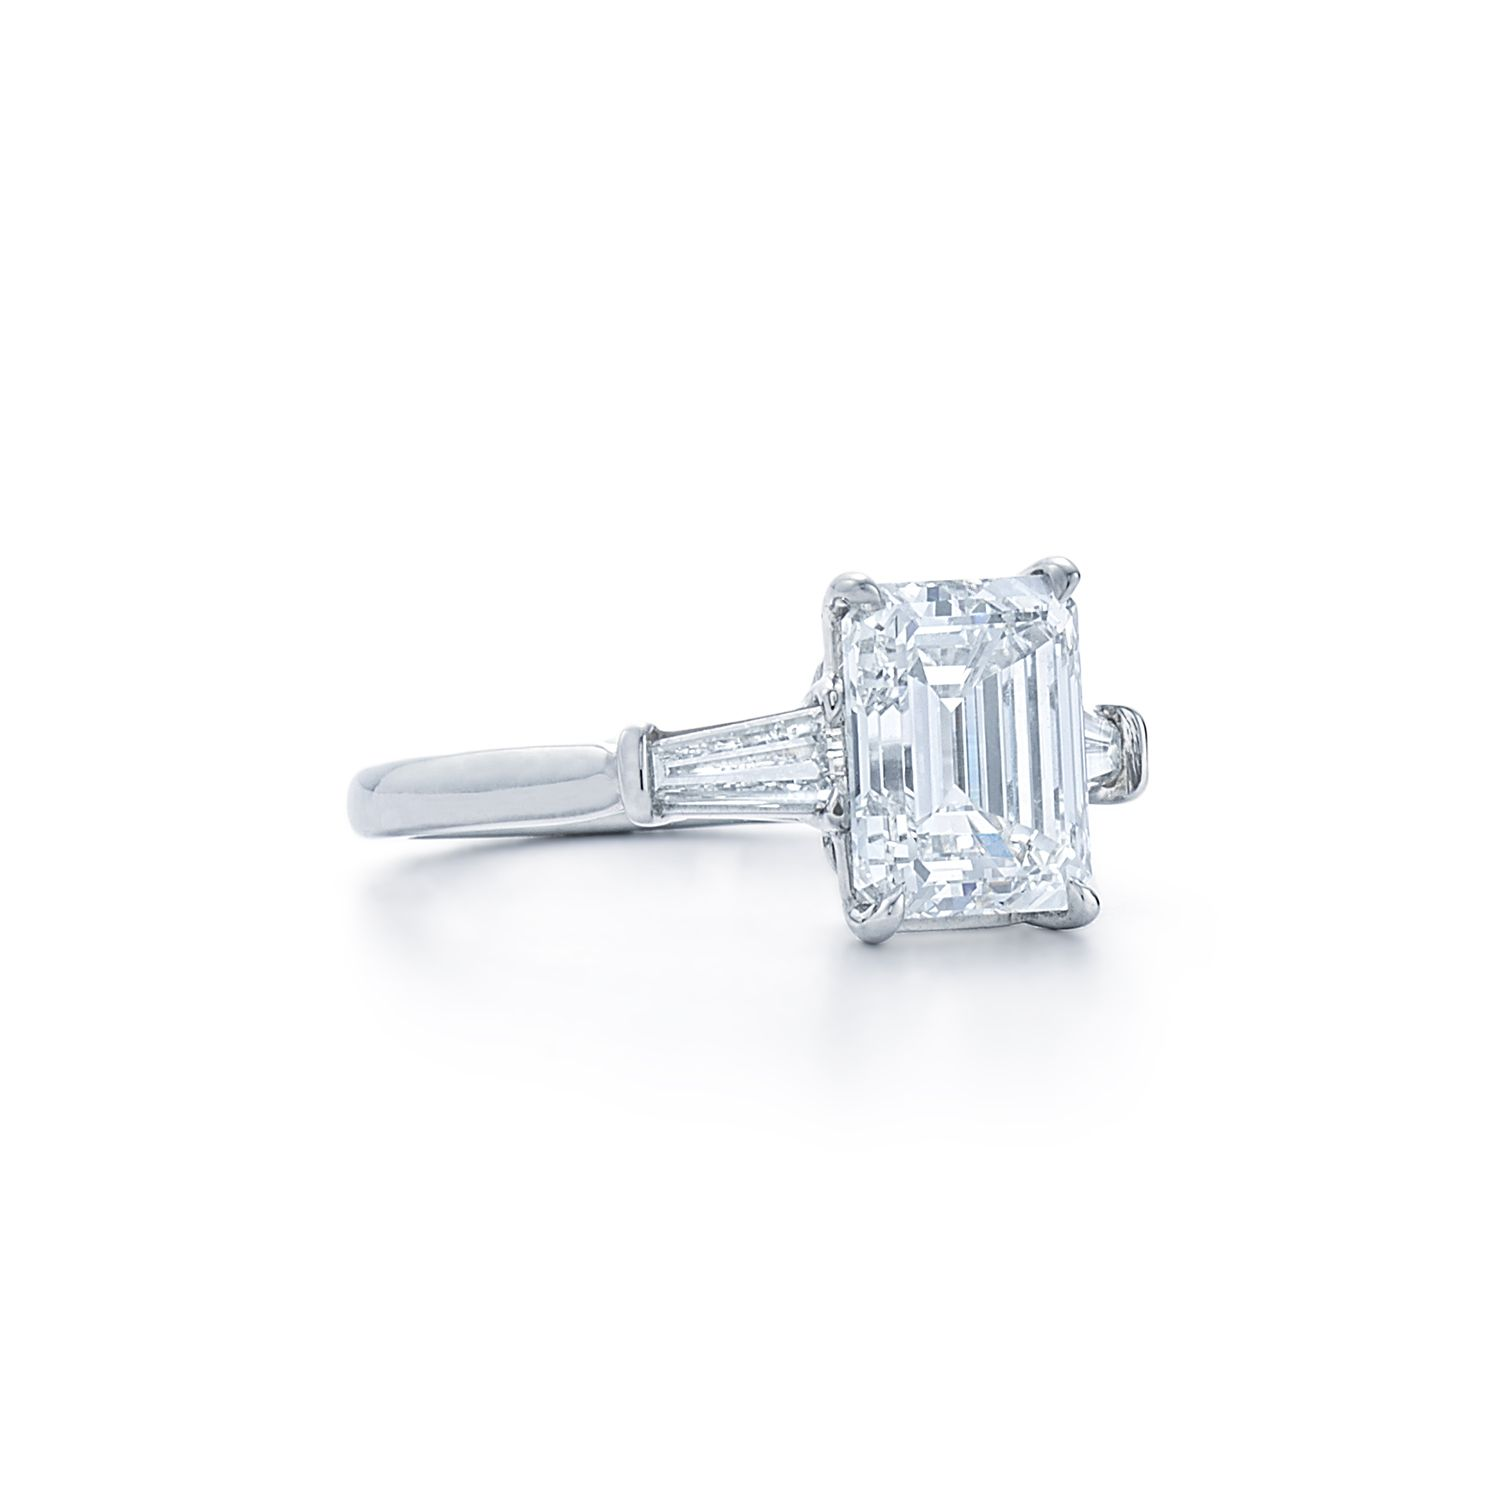 Emerald cut diamond ring with tapered baguette side stones Set in